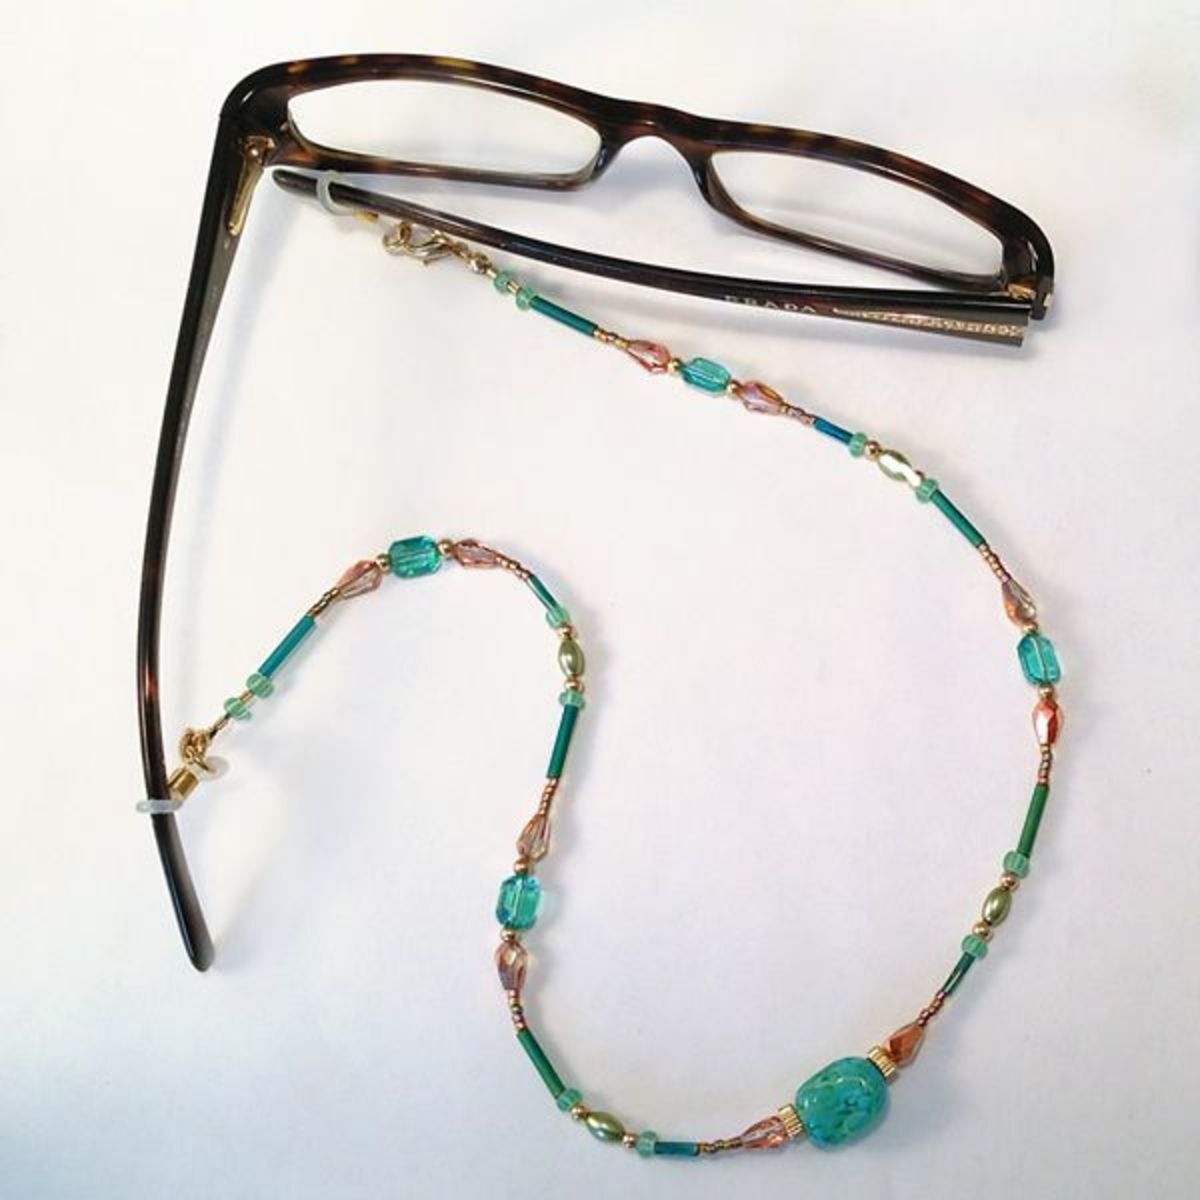 Convertible beaded eyeglass chain step-by-step jewelry making tutorial